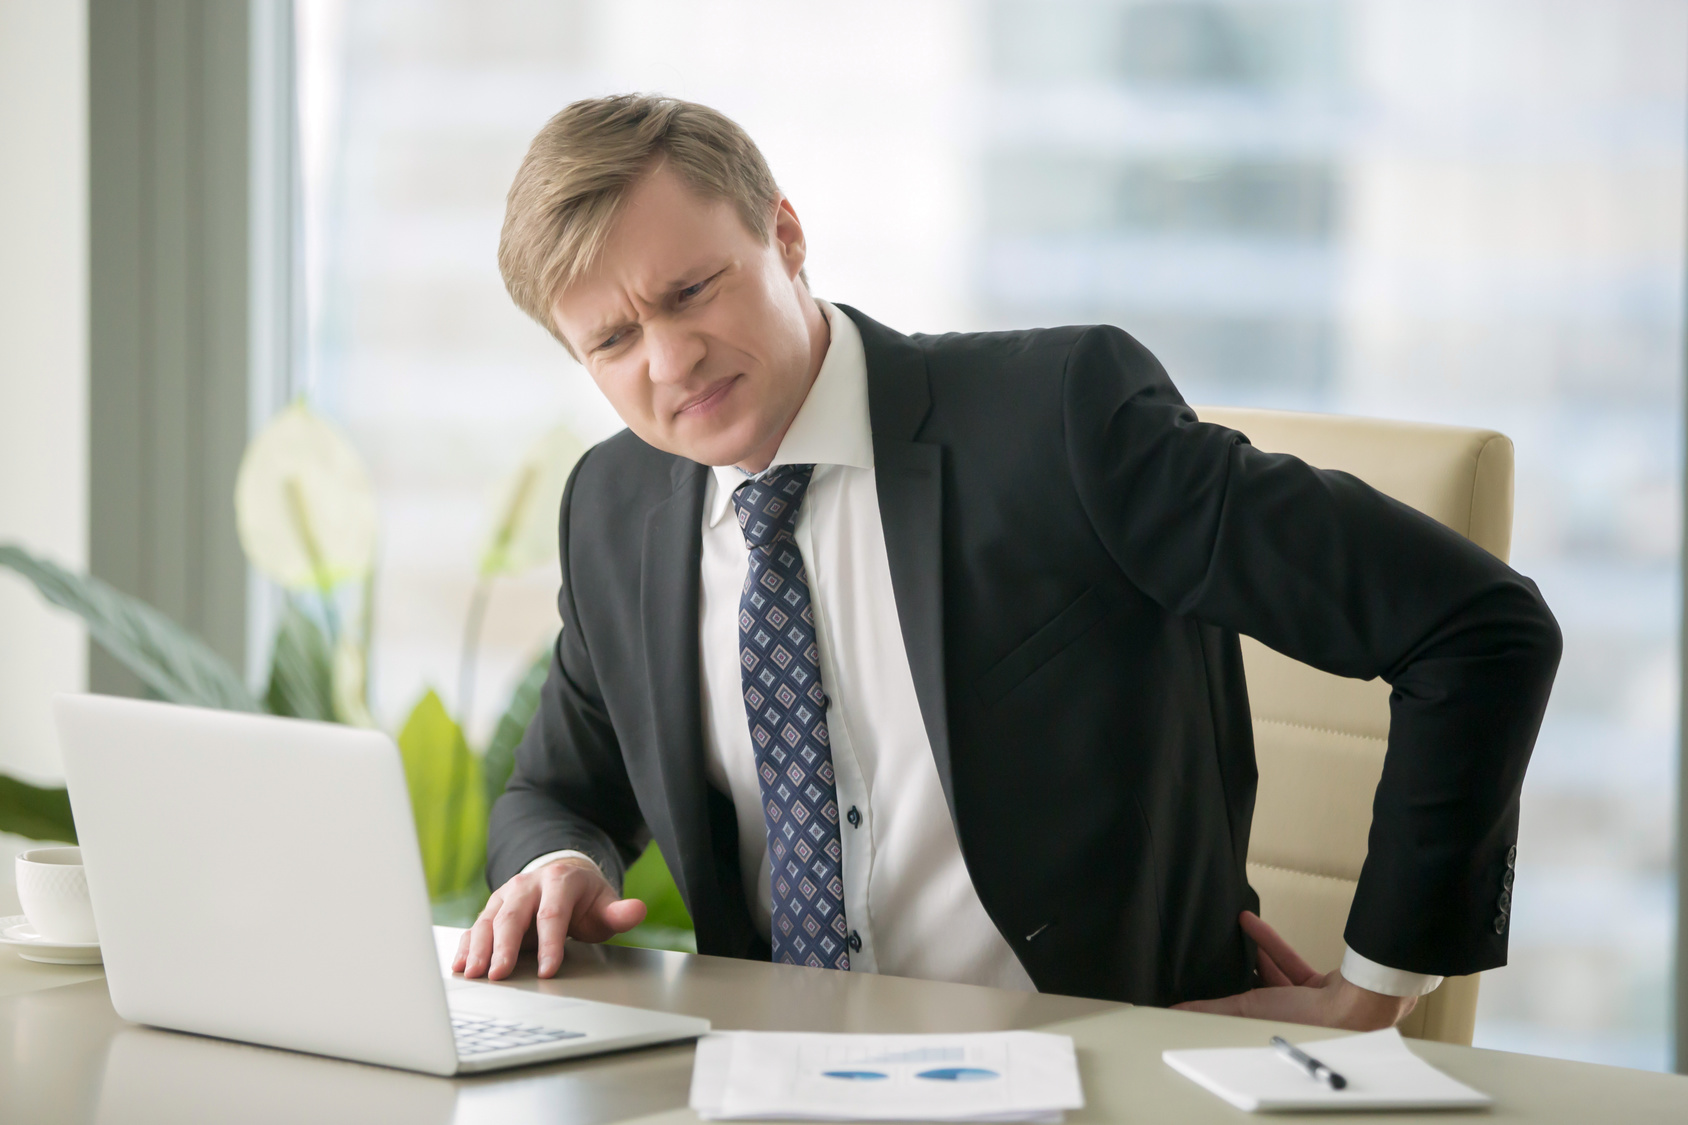 Young businessman holding his back with a pained expression